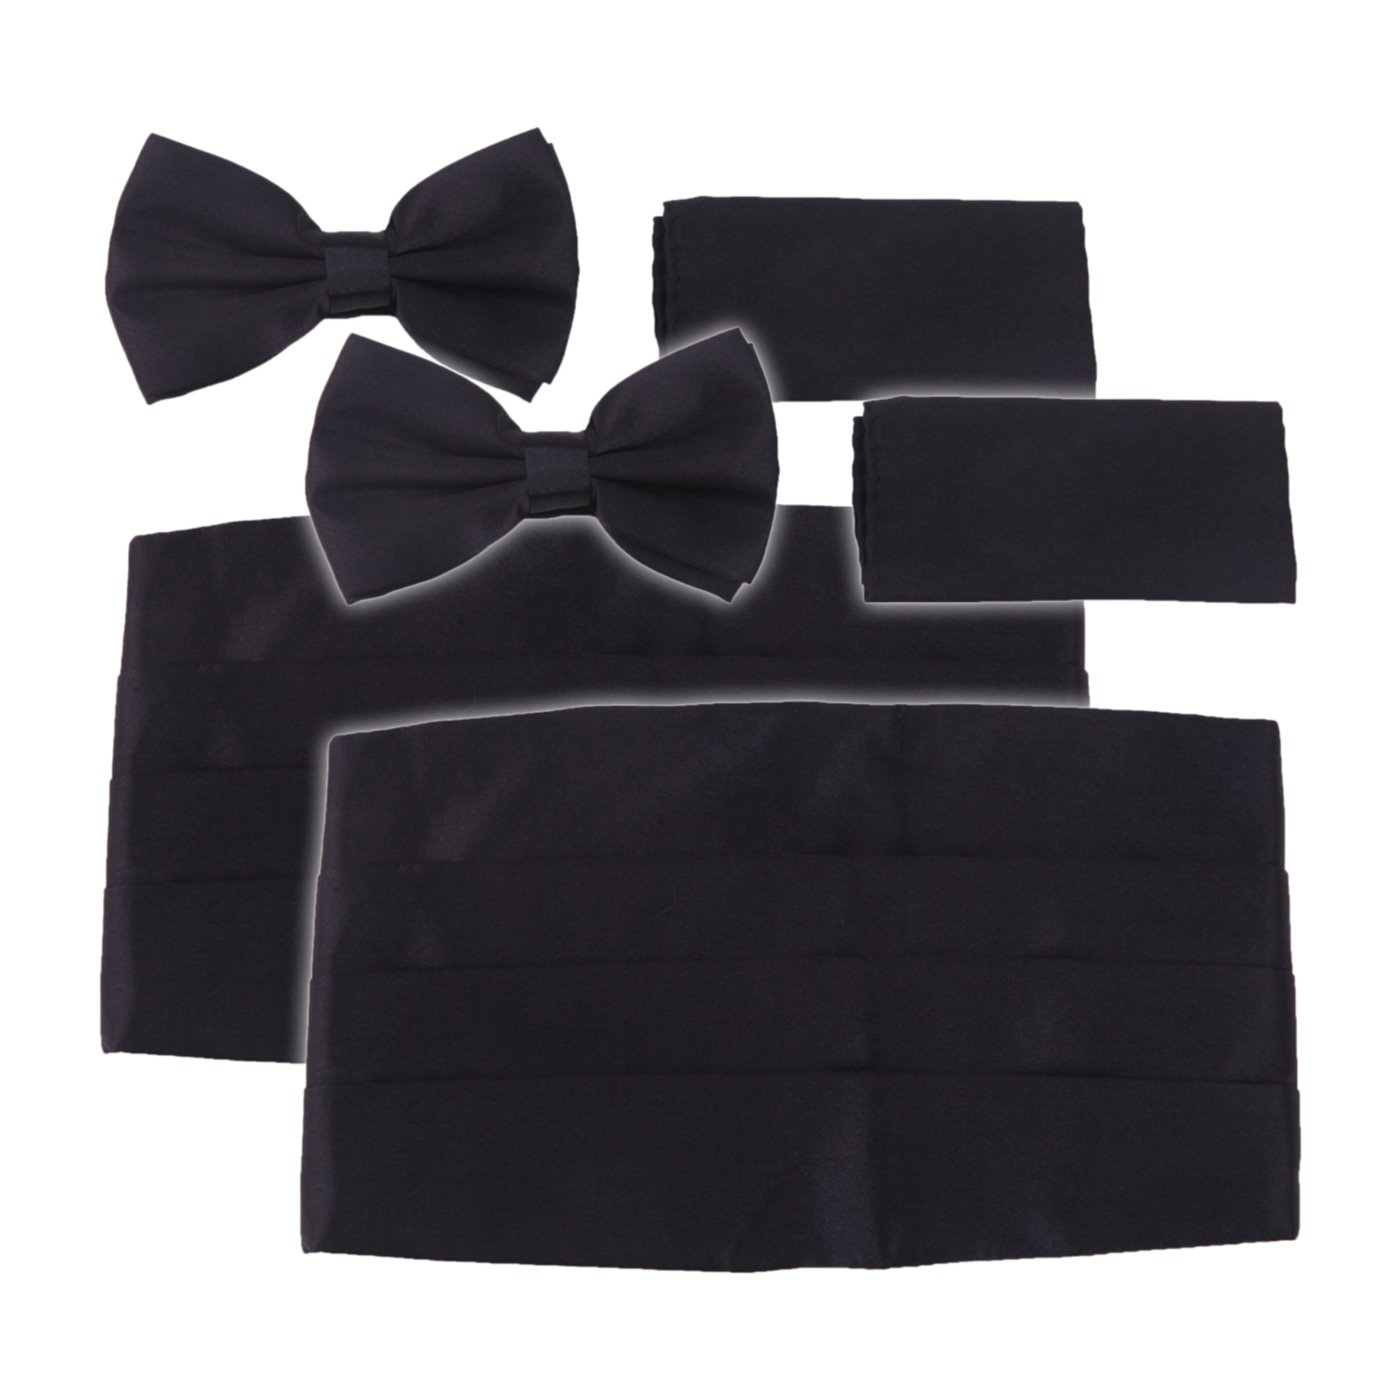 396996e2ee1c Adjustable bowtie, cummerbund, and pocket square set is perfect for any  formal occassion. Bowtie Max Necksize: 18